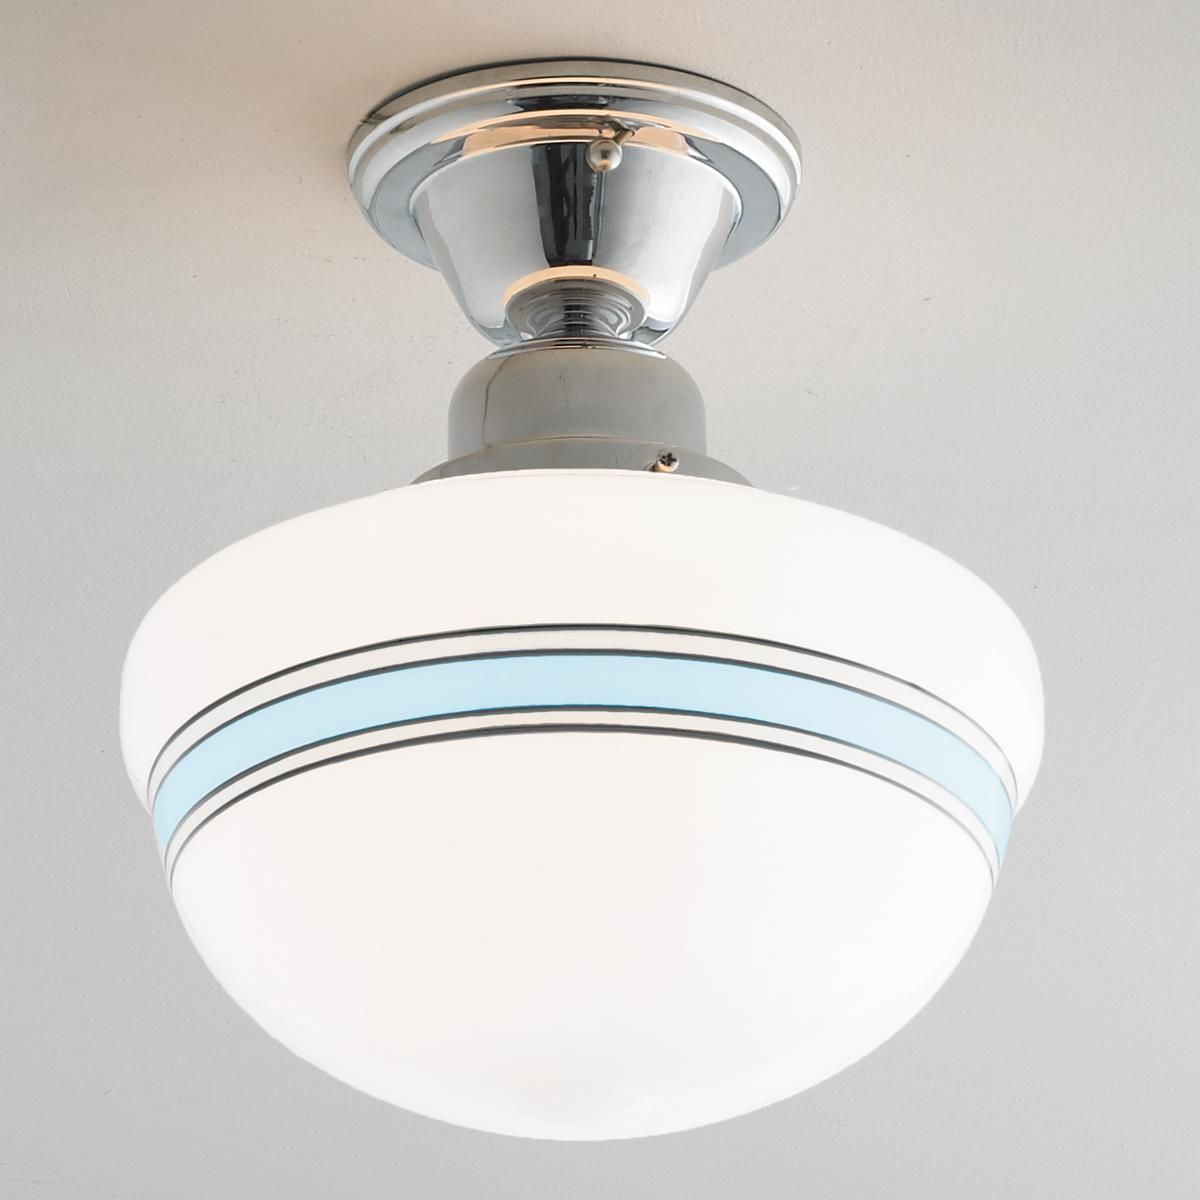 Striped Schoolhouse Ceiling Light Ceiling Lights Ceiling Light Shades Cottage Lighting